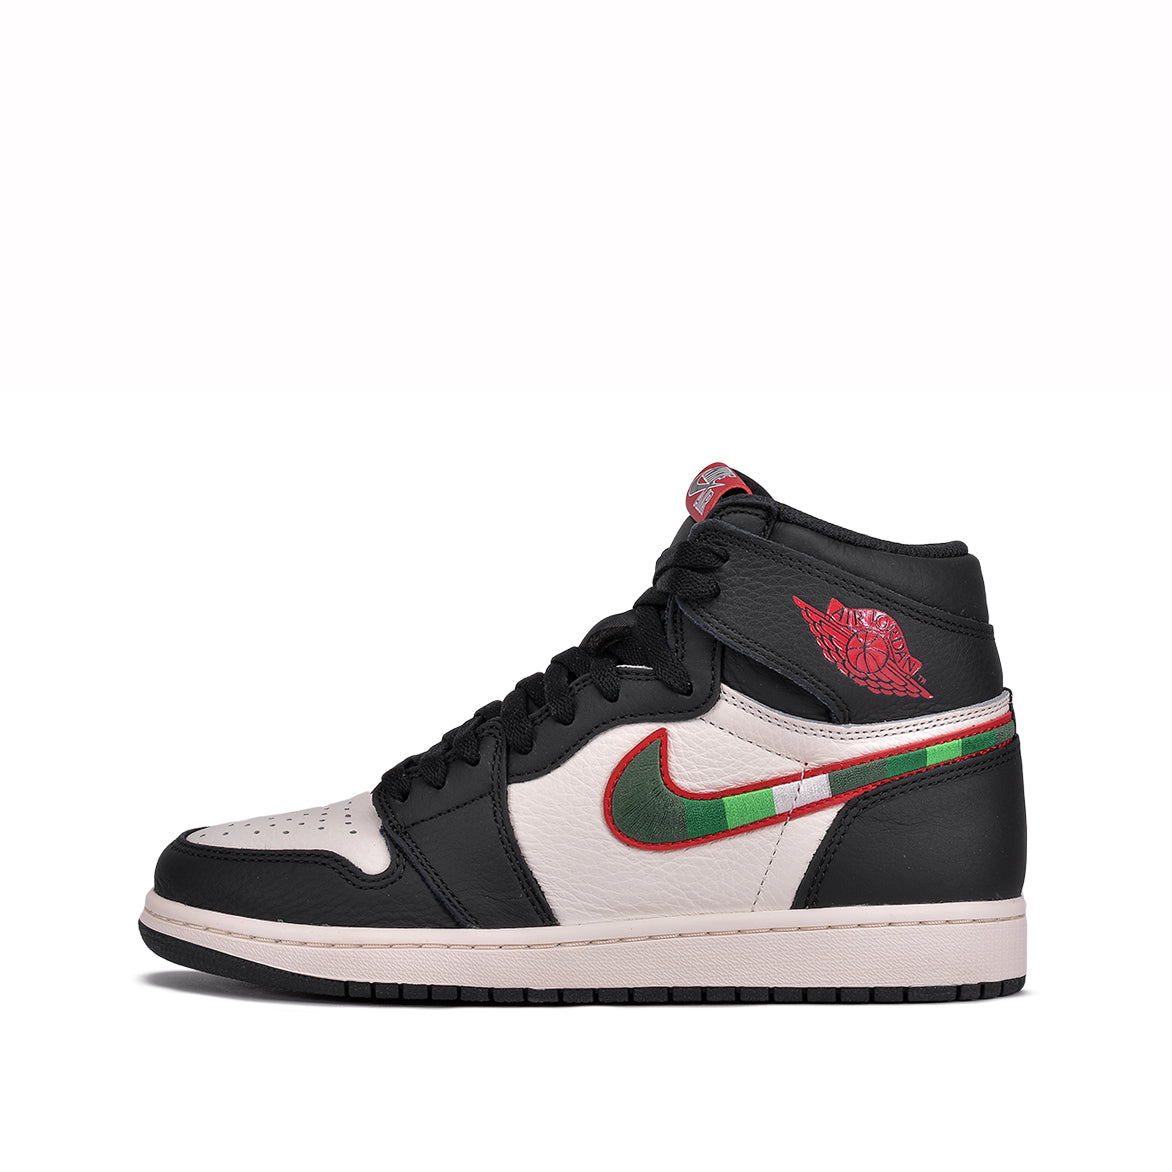 4743722b215cd6 AIR JORDAN 1 RETRO HIGH OG (GS)